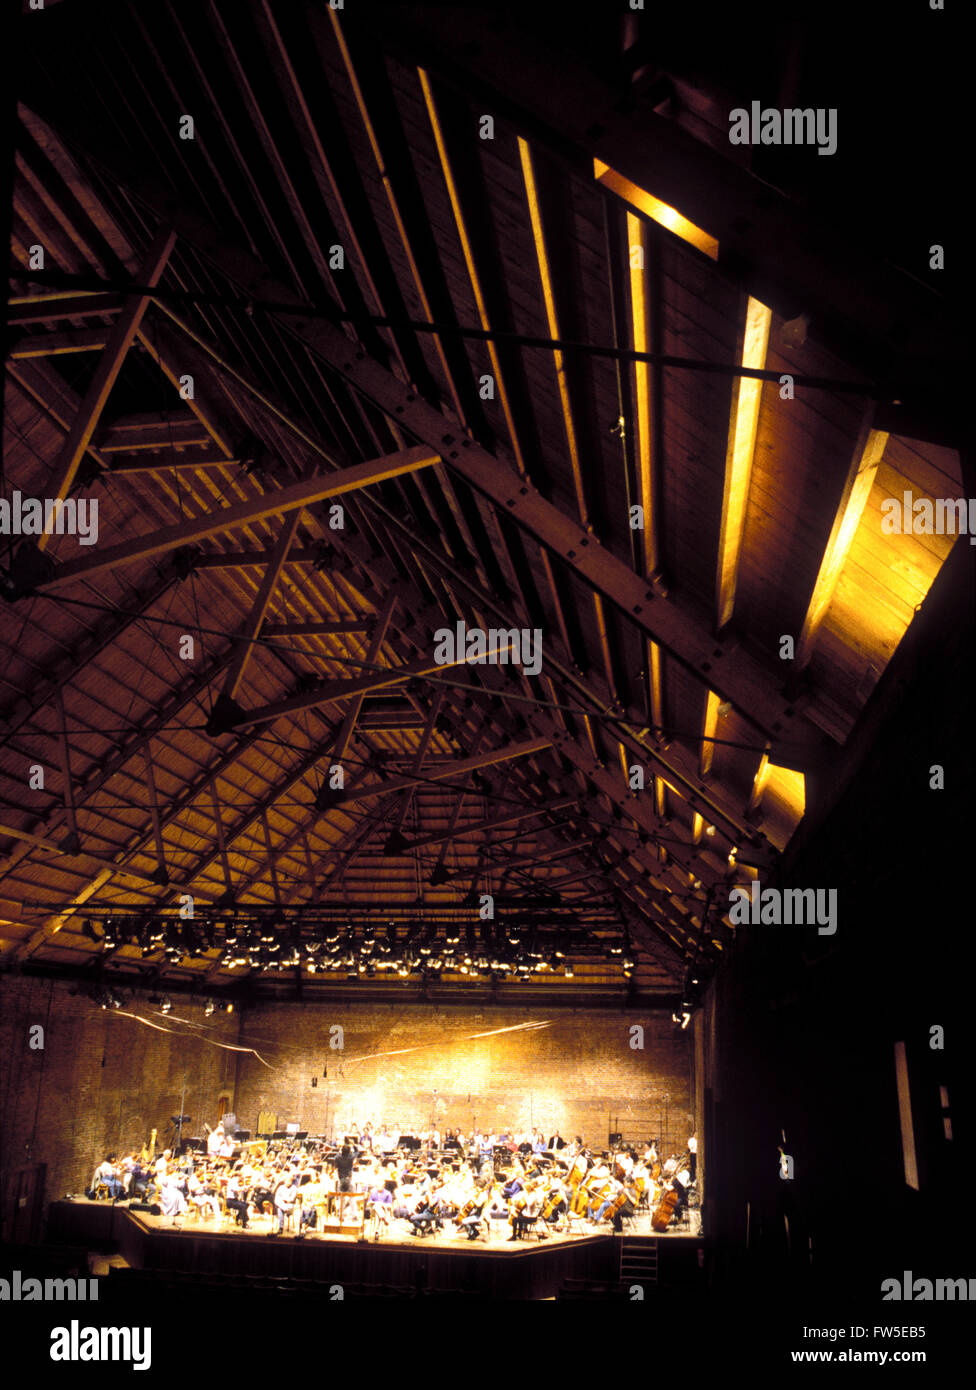 BRITTEN, B.  Snape Maltings Concert Hall Suffolk.  Interior, with orchestra rehearsing.  1999. - Stock Image